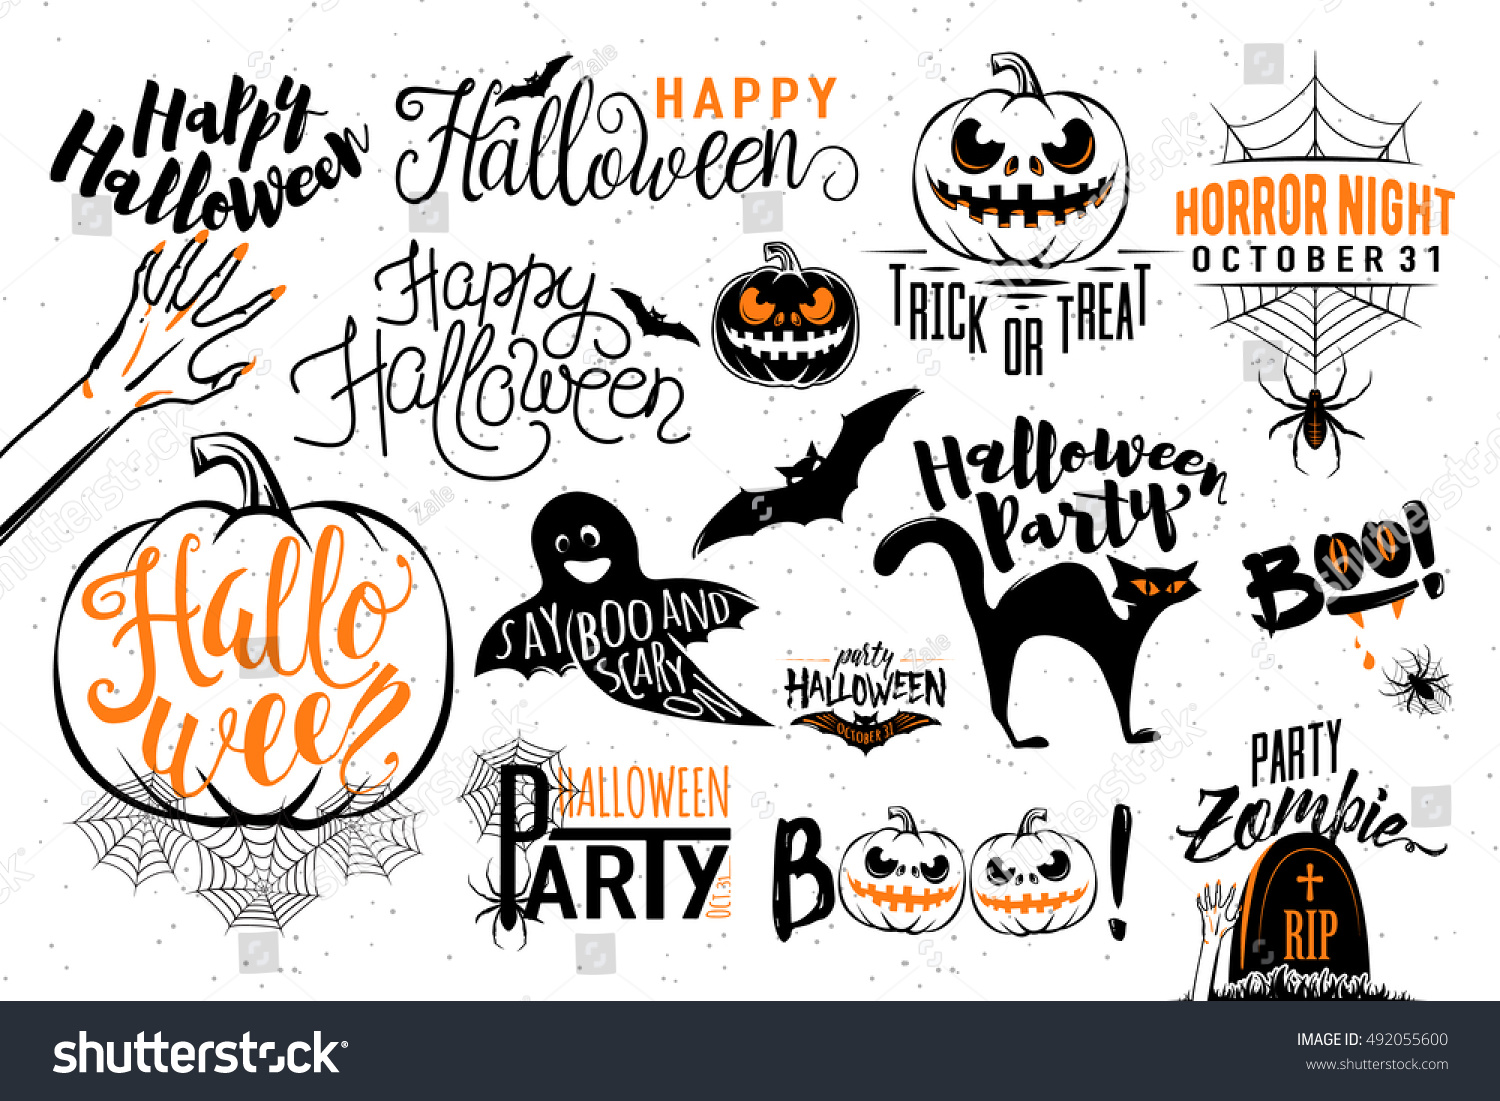 Uncategorized Halloween Symbolism happy halloween celebration icon label templates stock vector with scary symbols zombie hand bat halloween